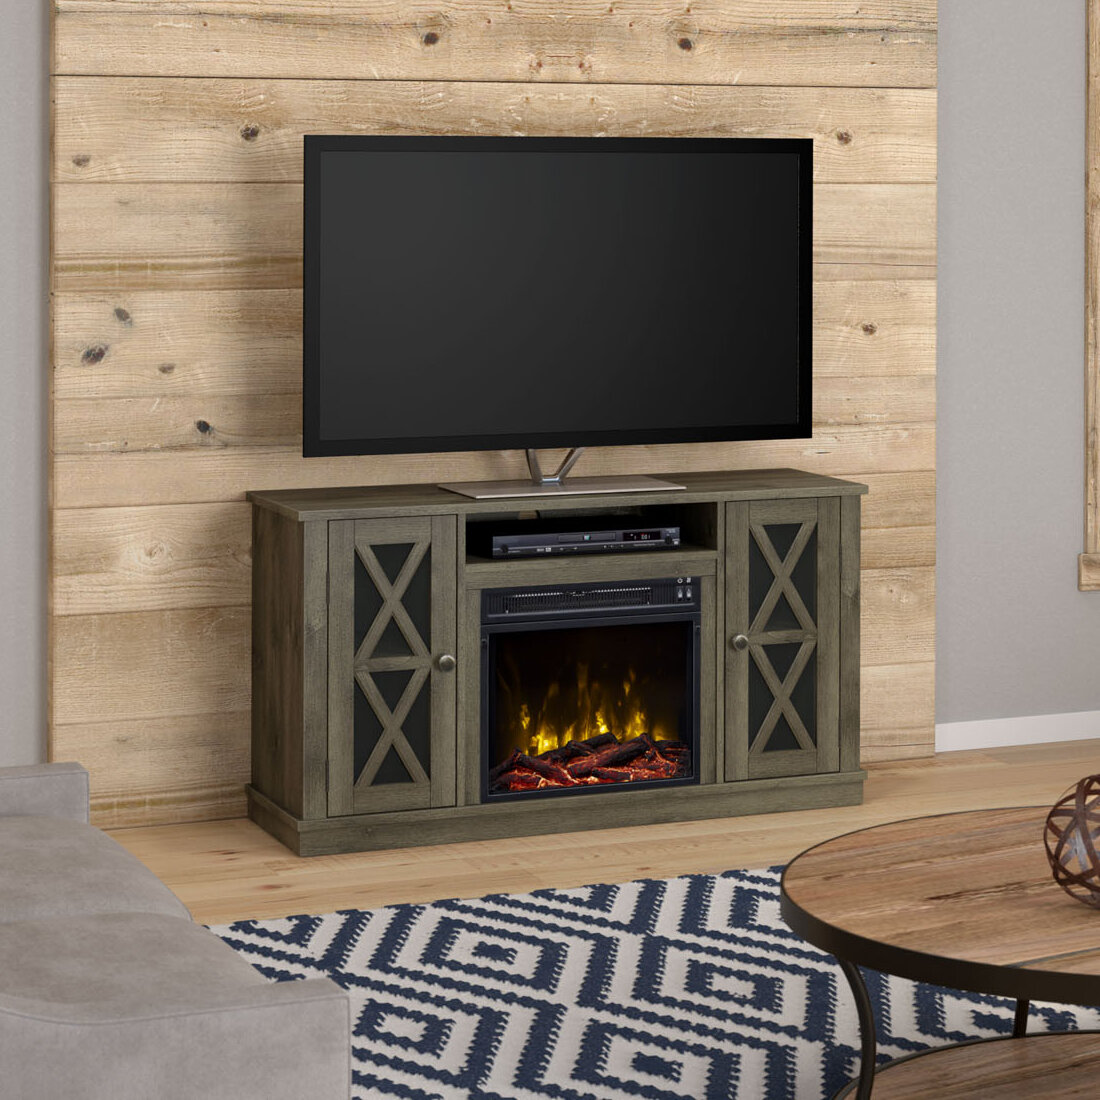 Breakwater Bay Emelia Tv Stand For Tvs Up To 55 With Optional Fireplace Reviews Wayfair